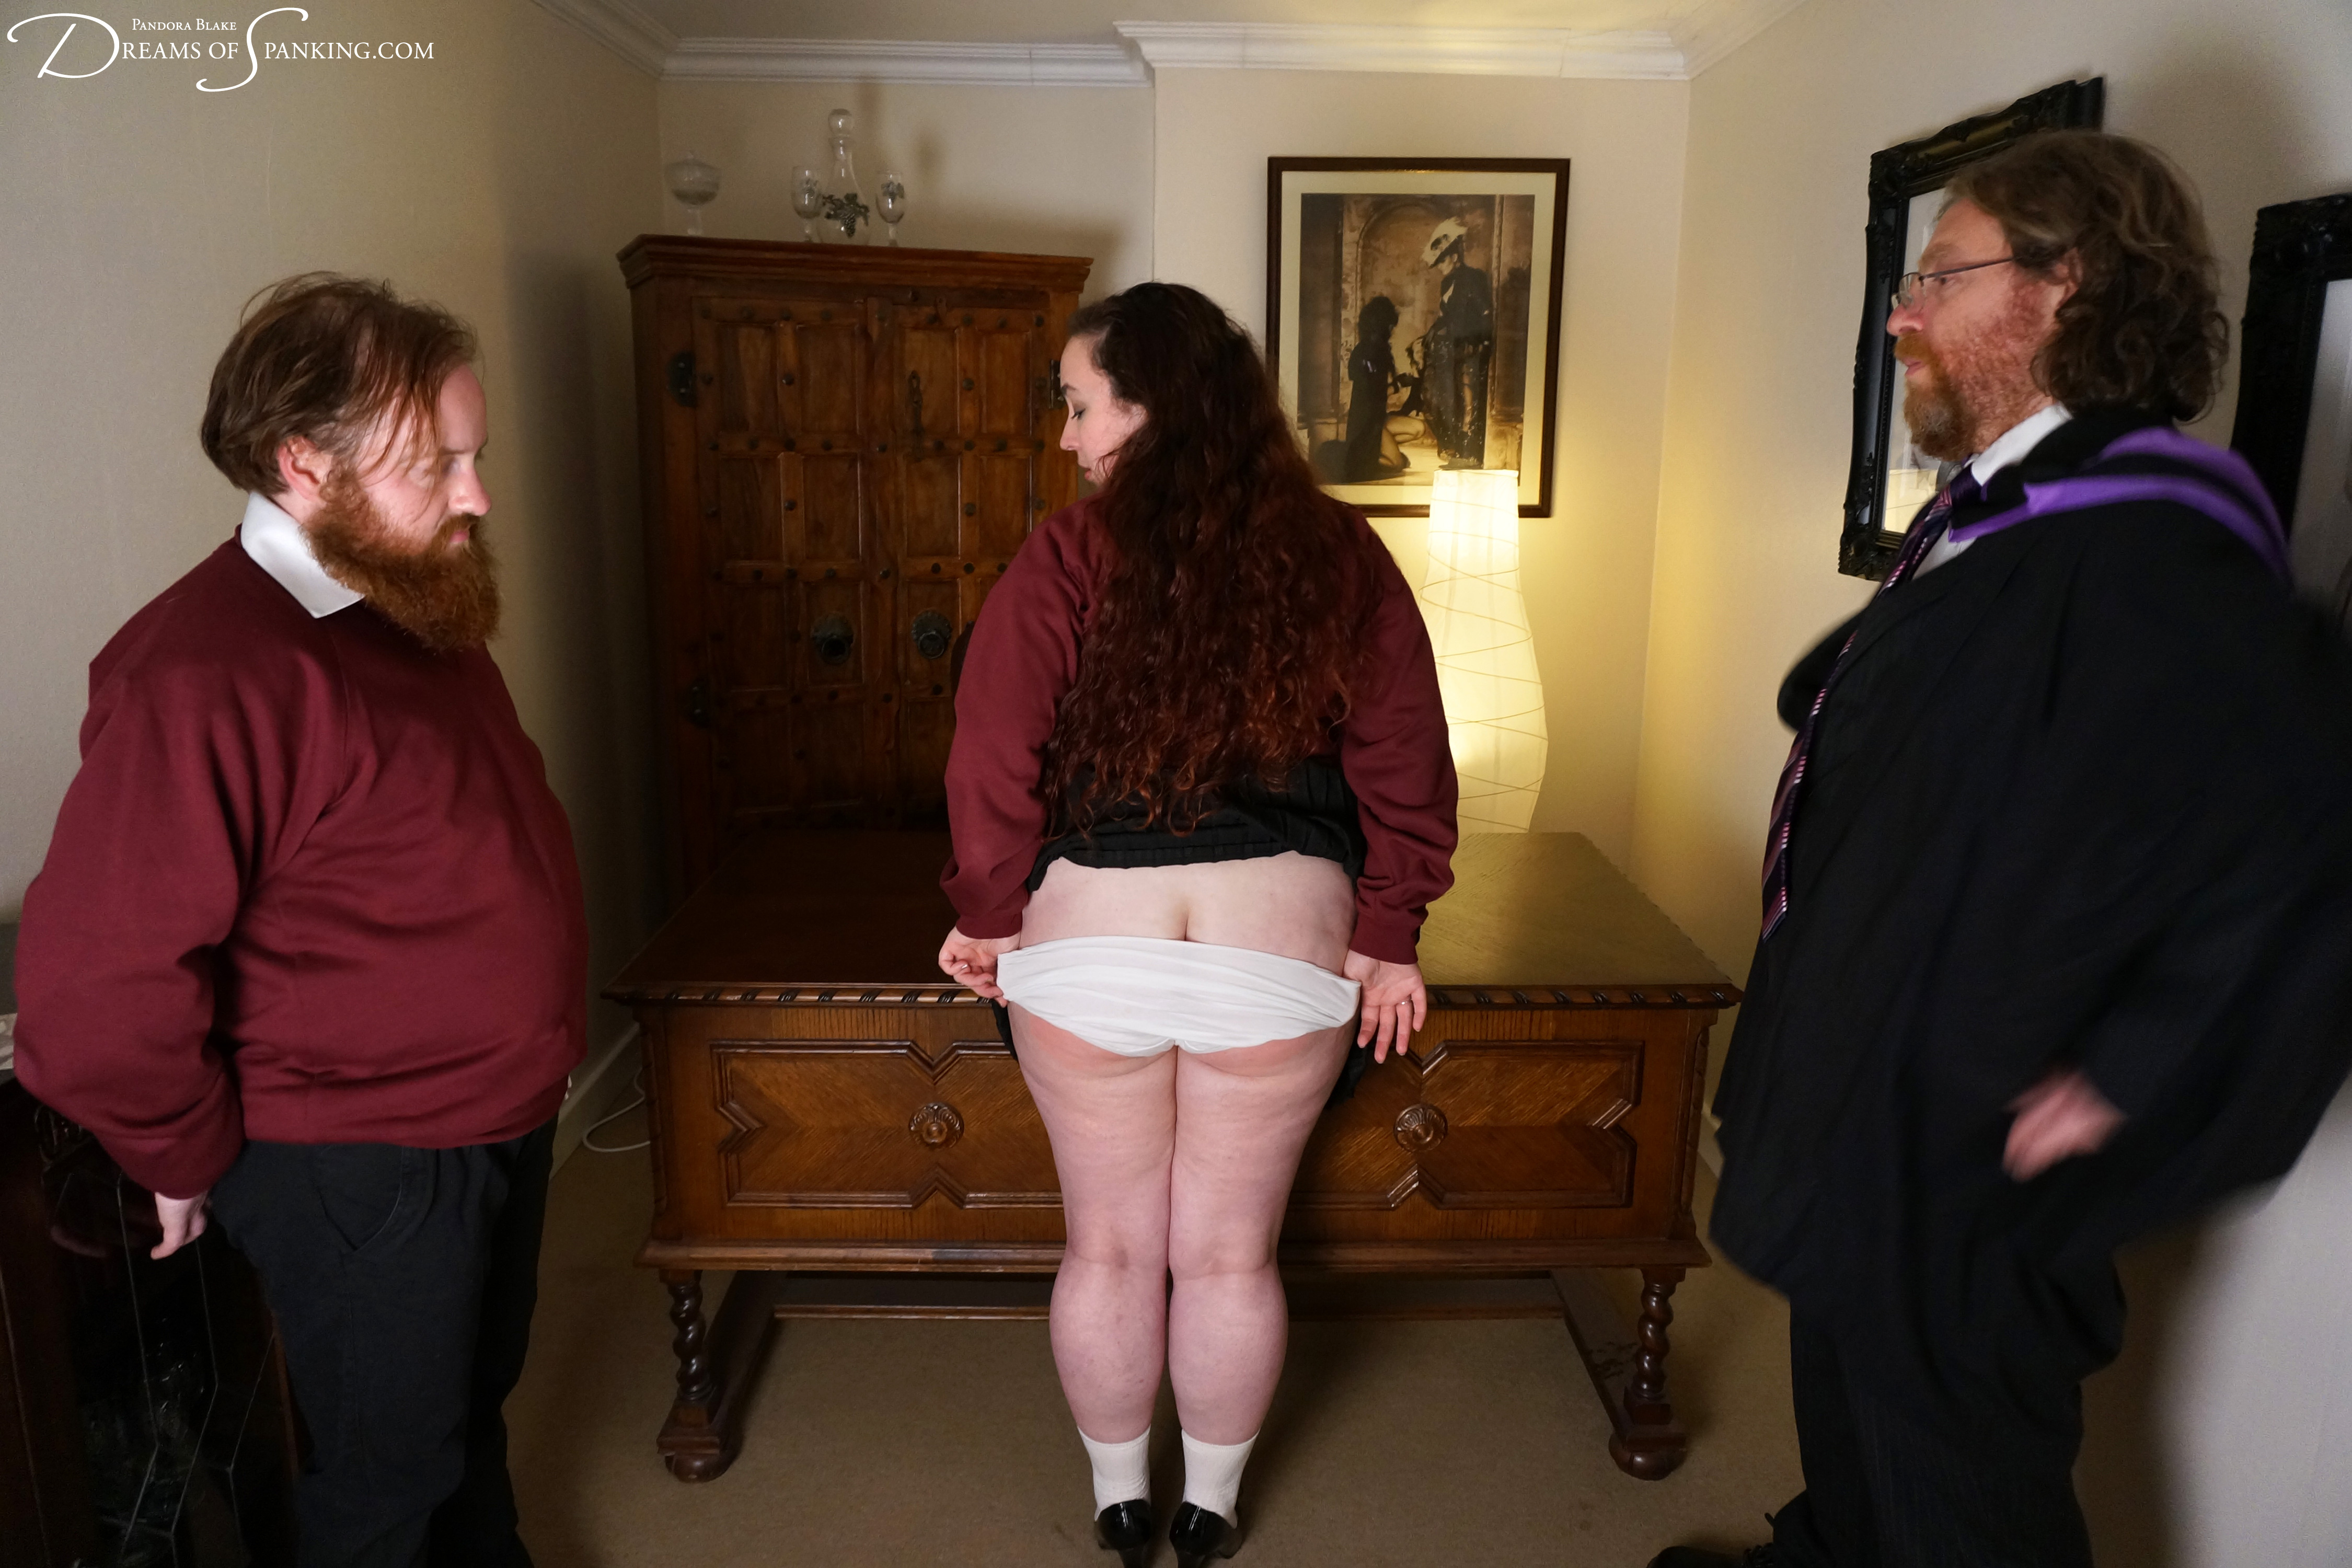 Ron Beastly, Seani Love and Nimue Allen at Dreams of Spanking